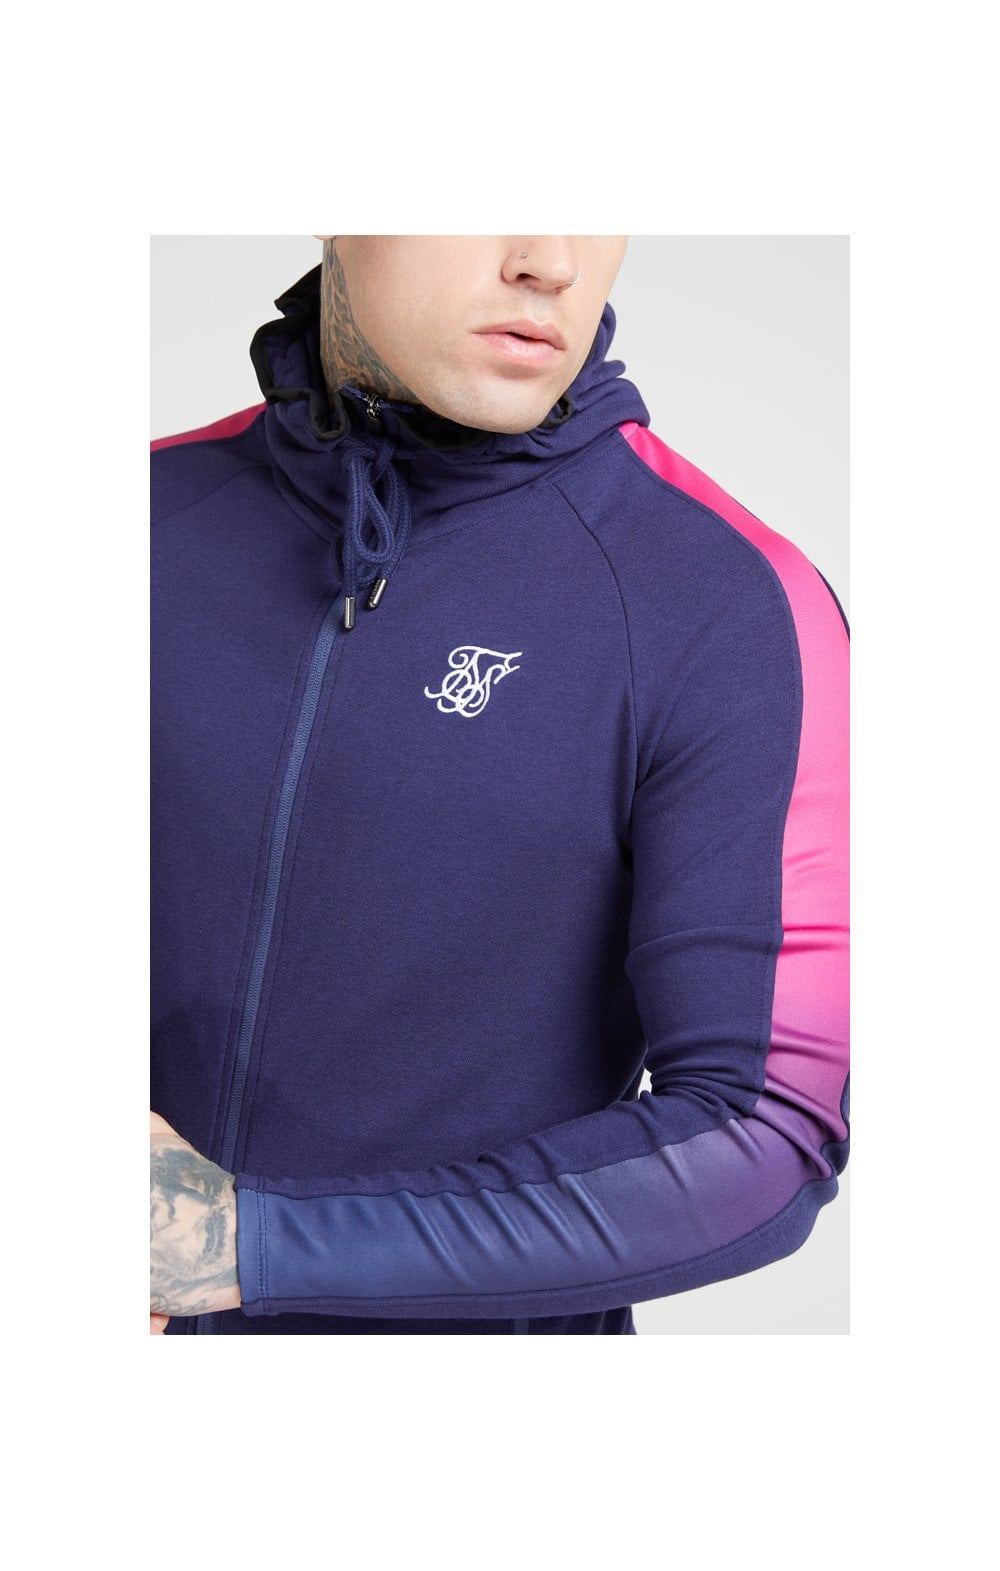 SikSilk SikSilk Fade Panel Zip Through Hoodie  Navy & Neon Fade ME